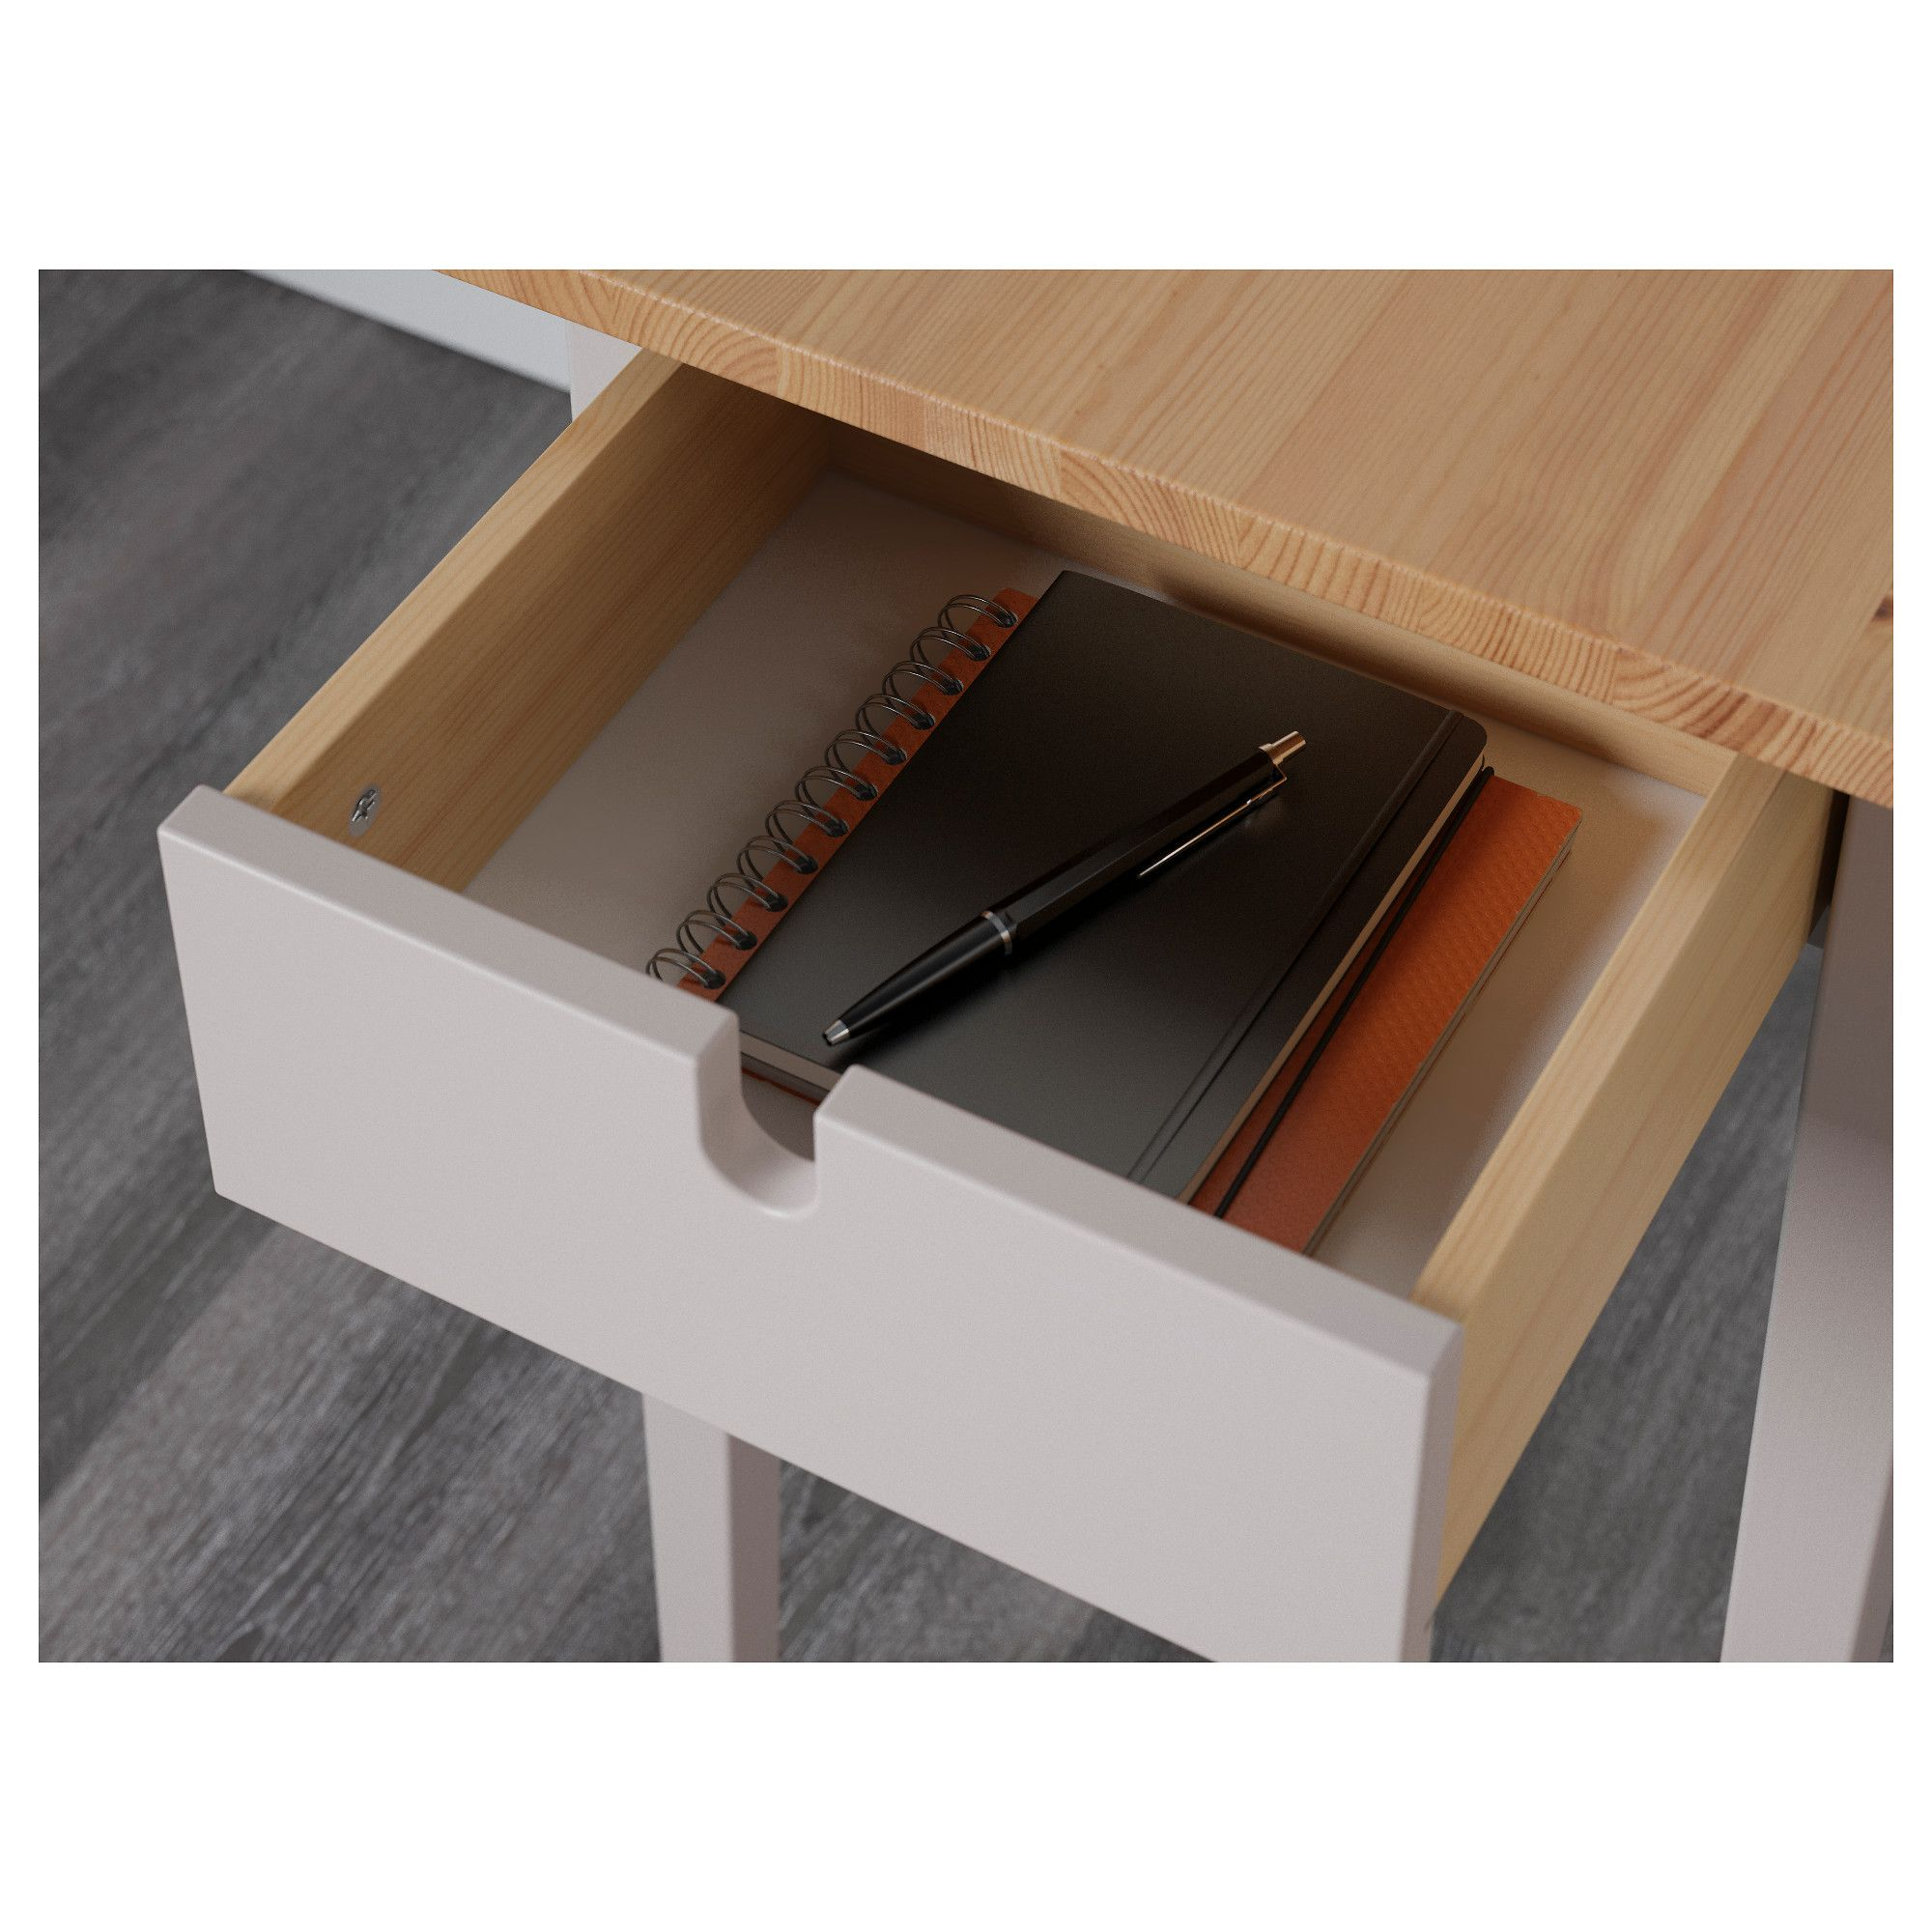 ikea norra sen laptop table solid wood is a durable natural